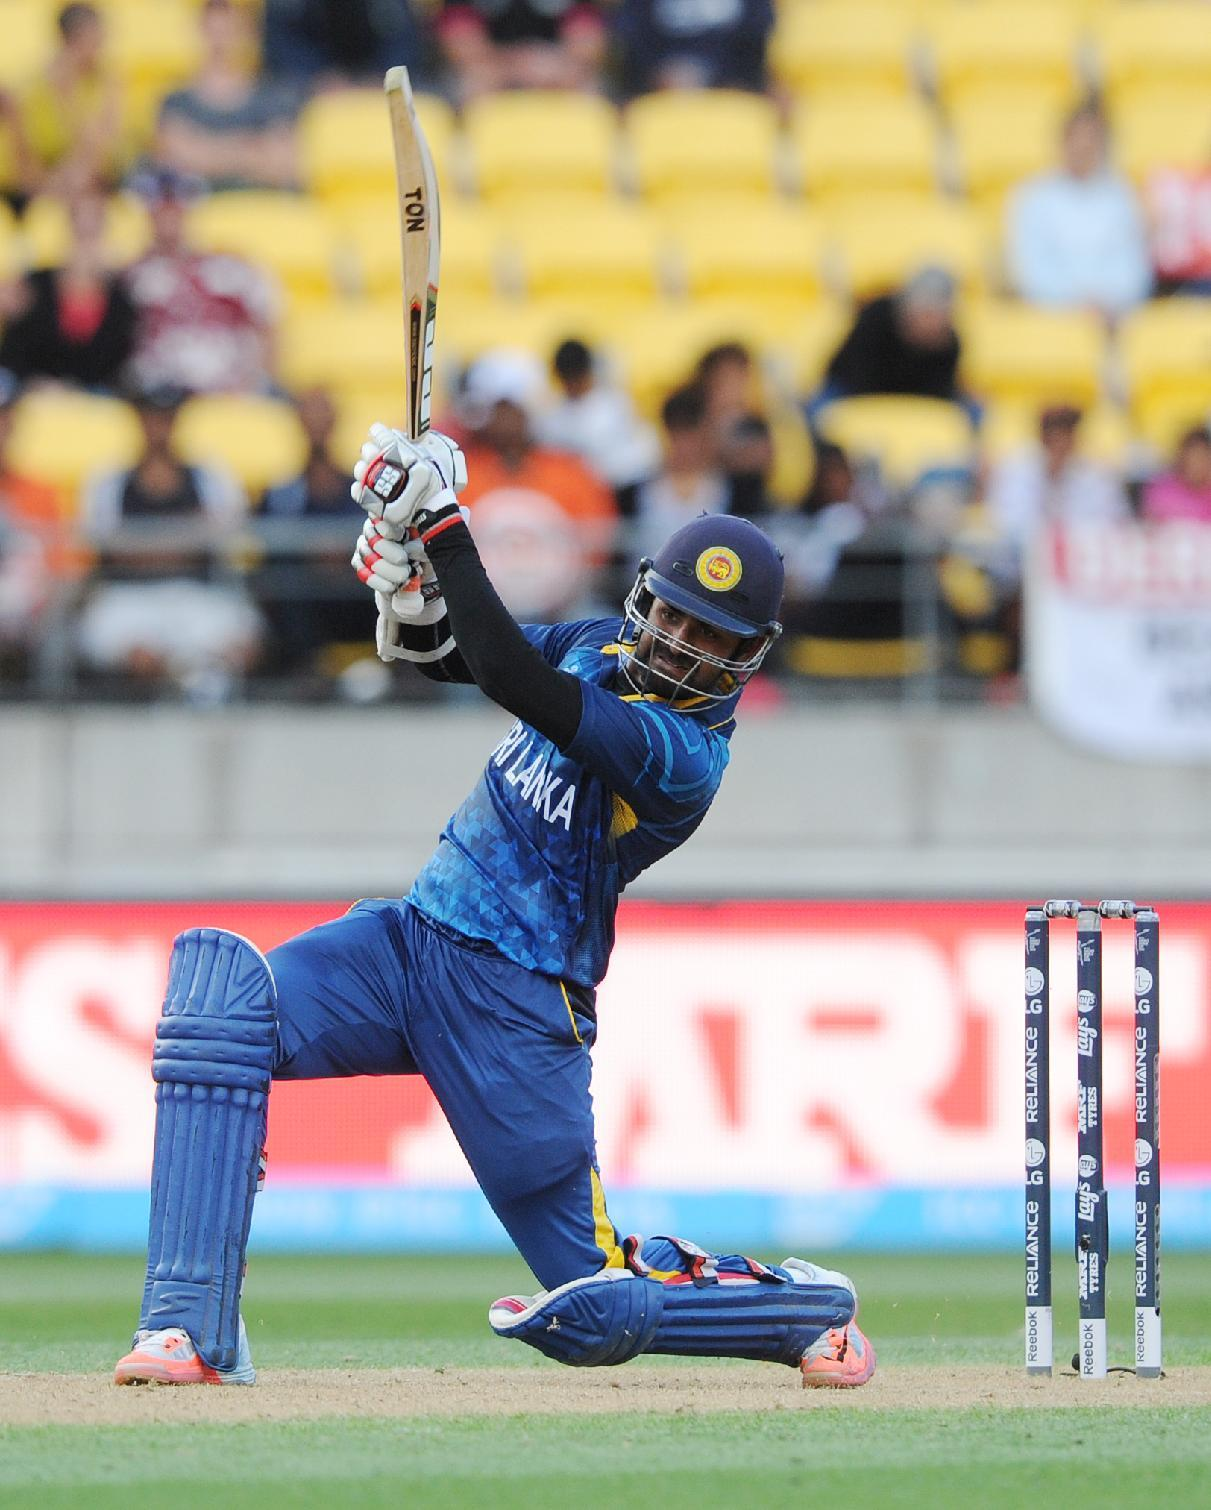 Sri Lanka beats England by 9 wickets in World Cup match